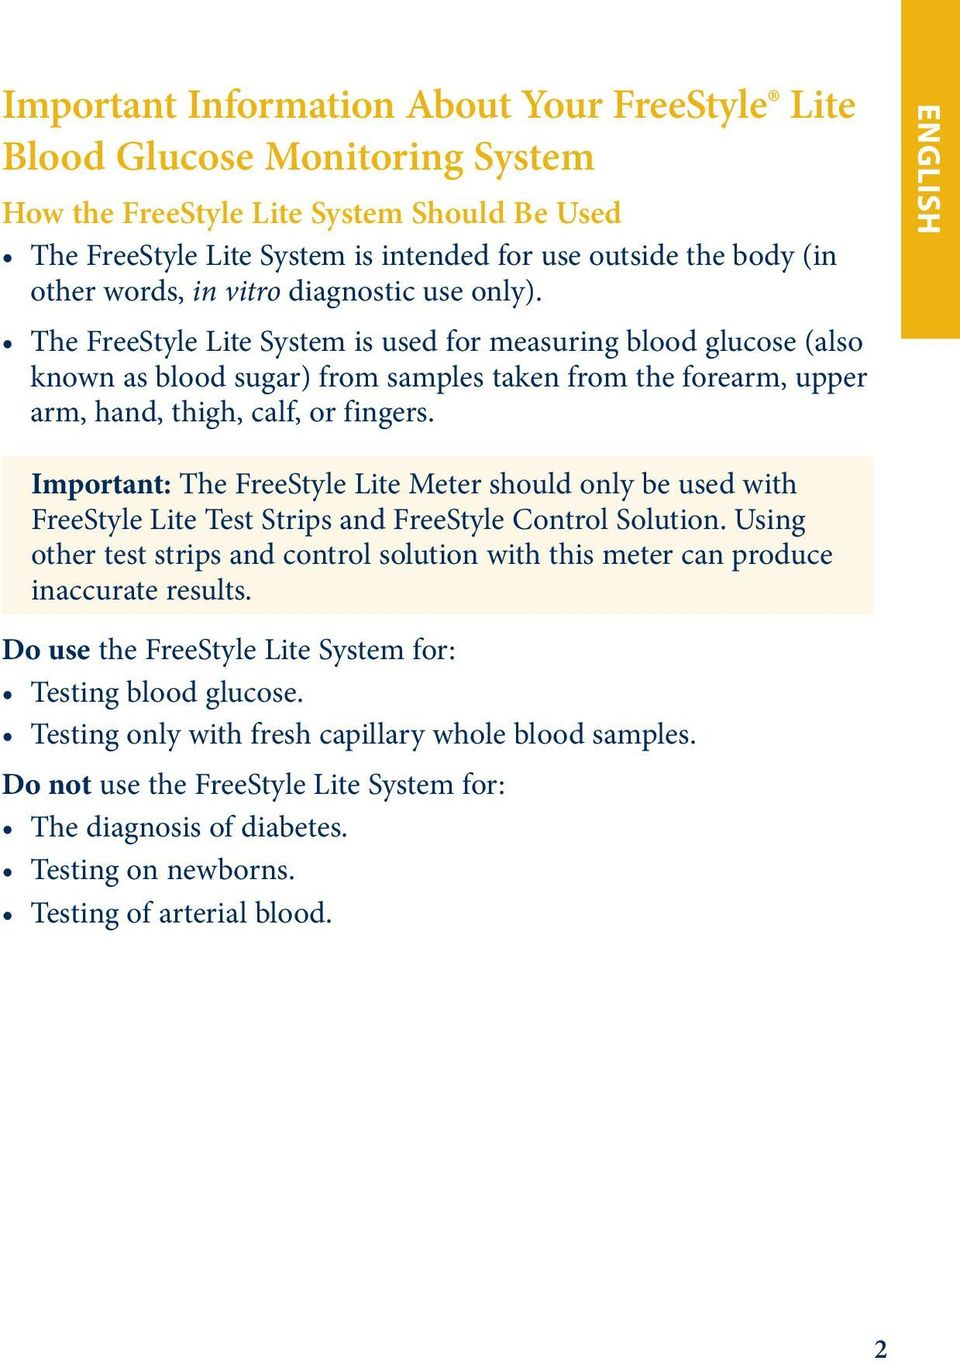 The FreeStyle Lite System is used for measuring blood glucose (also known as blood sugar) from samples taken from the forearm, upper arm, hand, thigh, calf, or fingers.